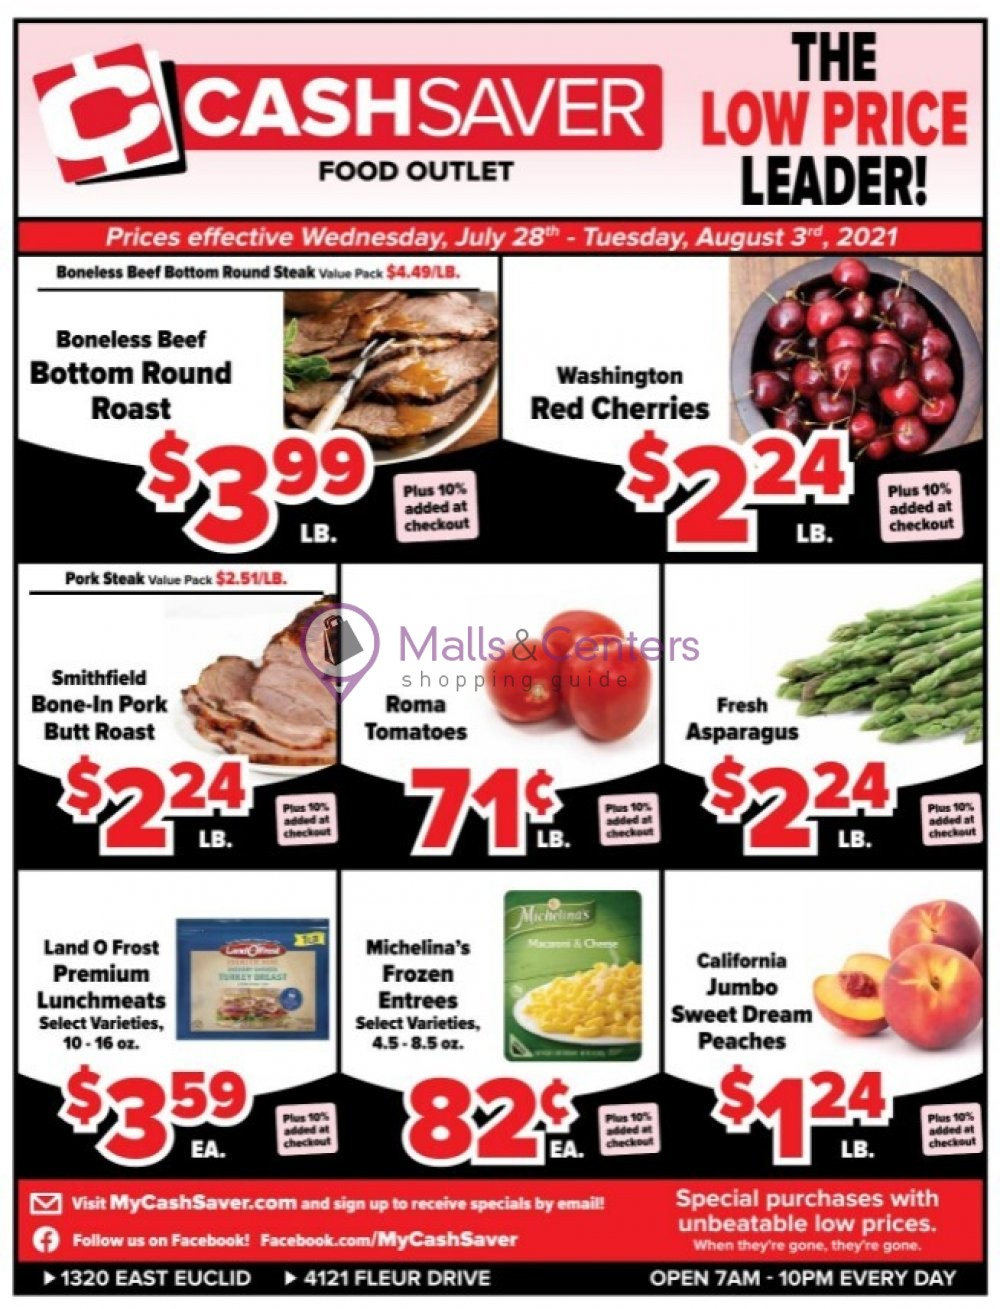 weekly ads Cash Saver Food Outlet - page 1 - mallscenters.com